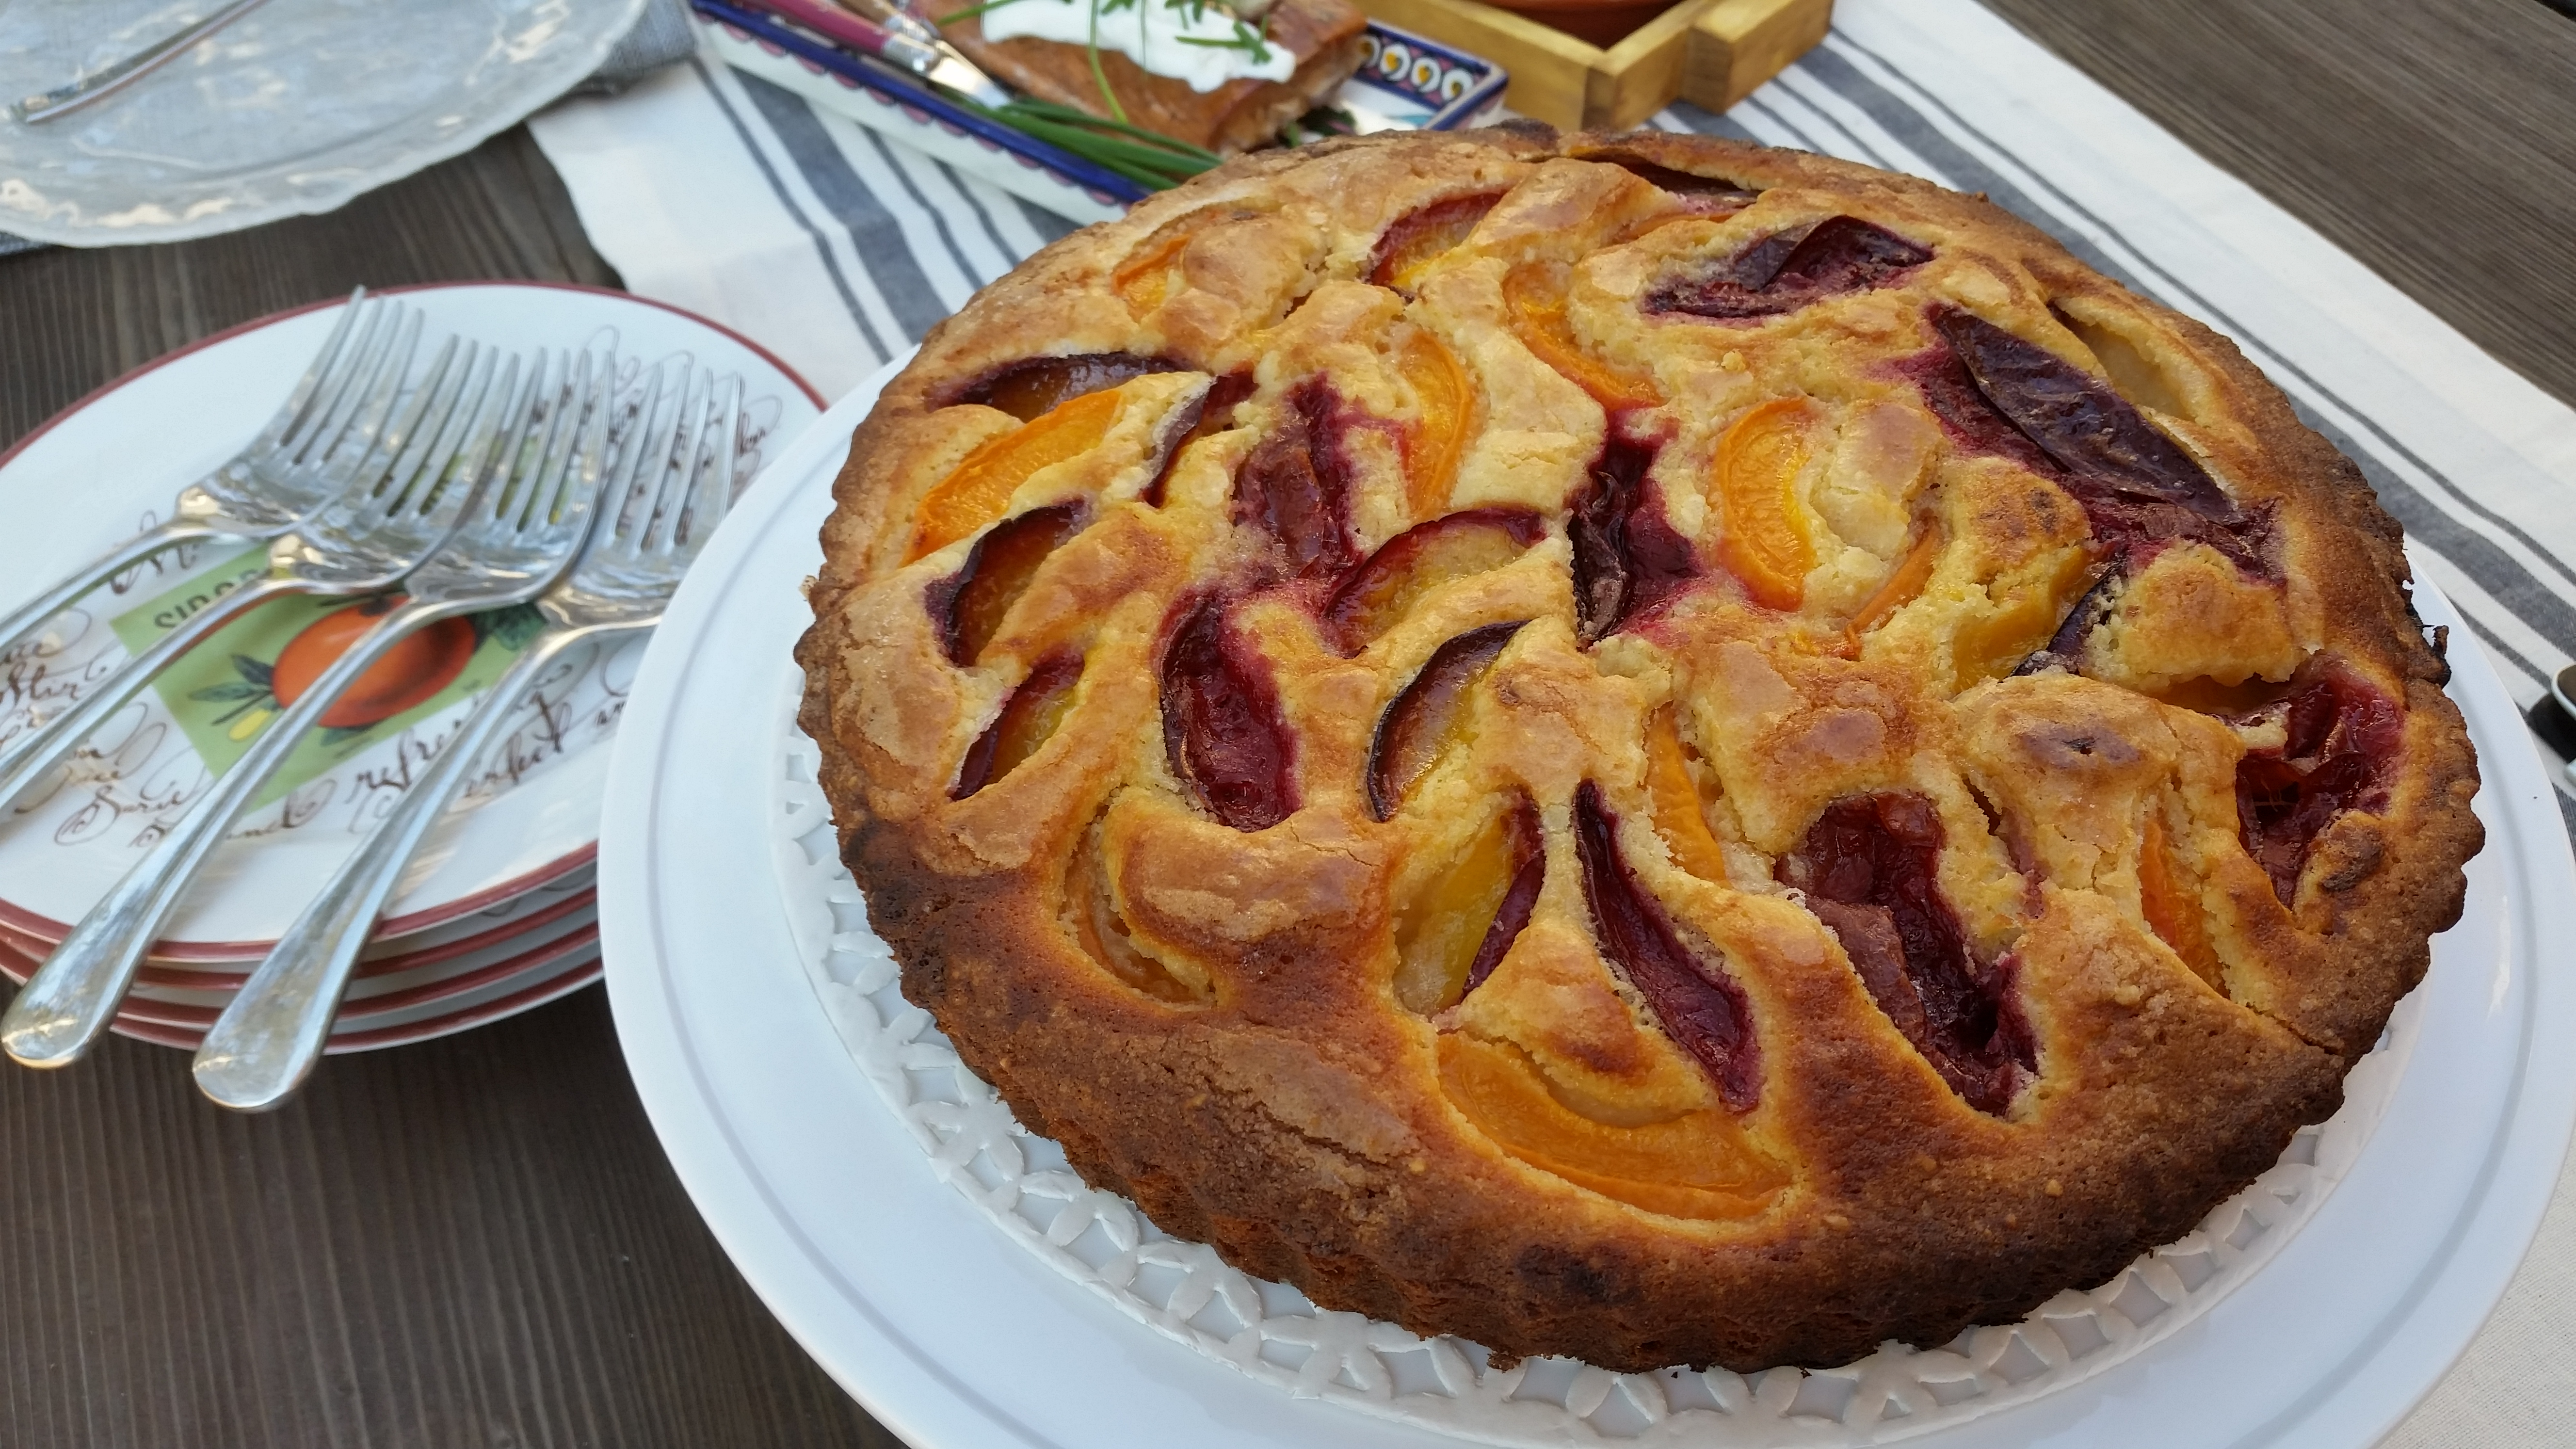 Plum and Apricot Tart